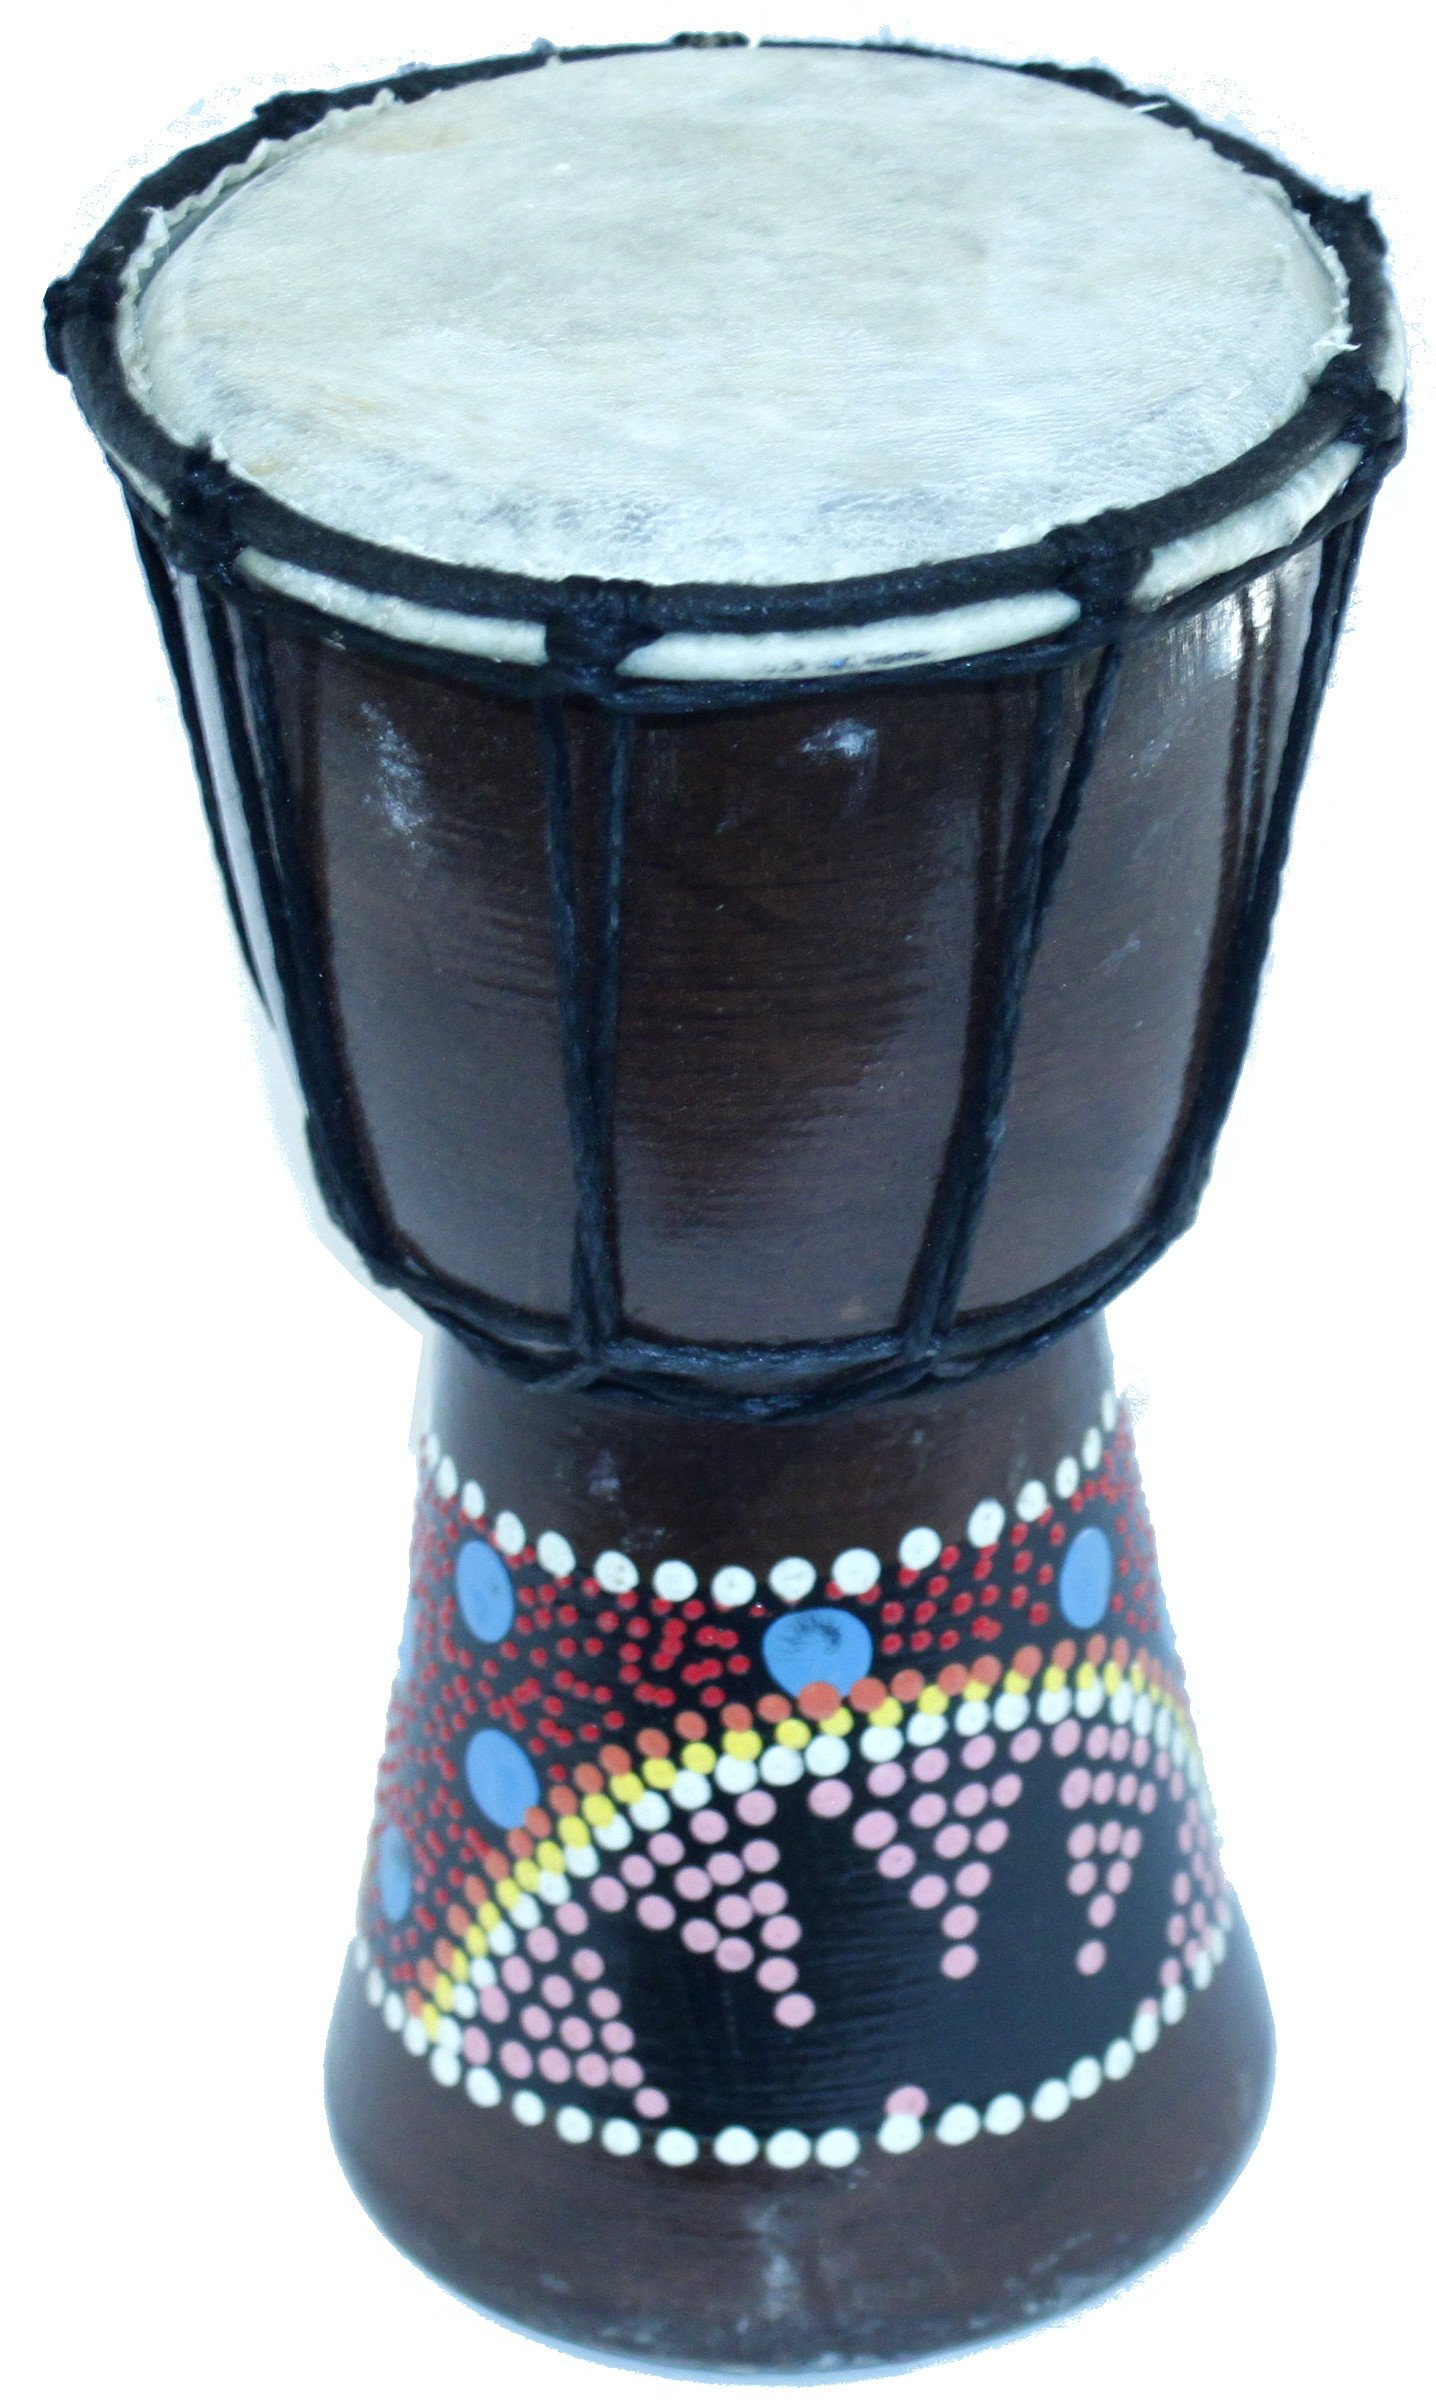 Djembe or Jembe Drum With colored dots from Jerusalem - Small (19cm or 7.5 Inches high) by Holy Land Market